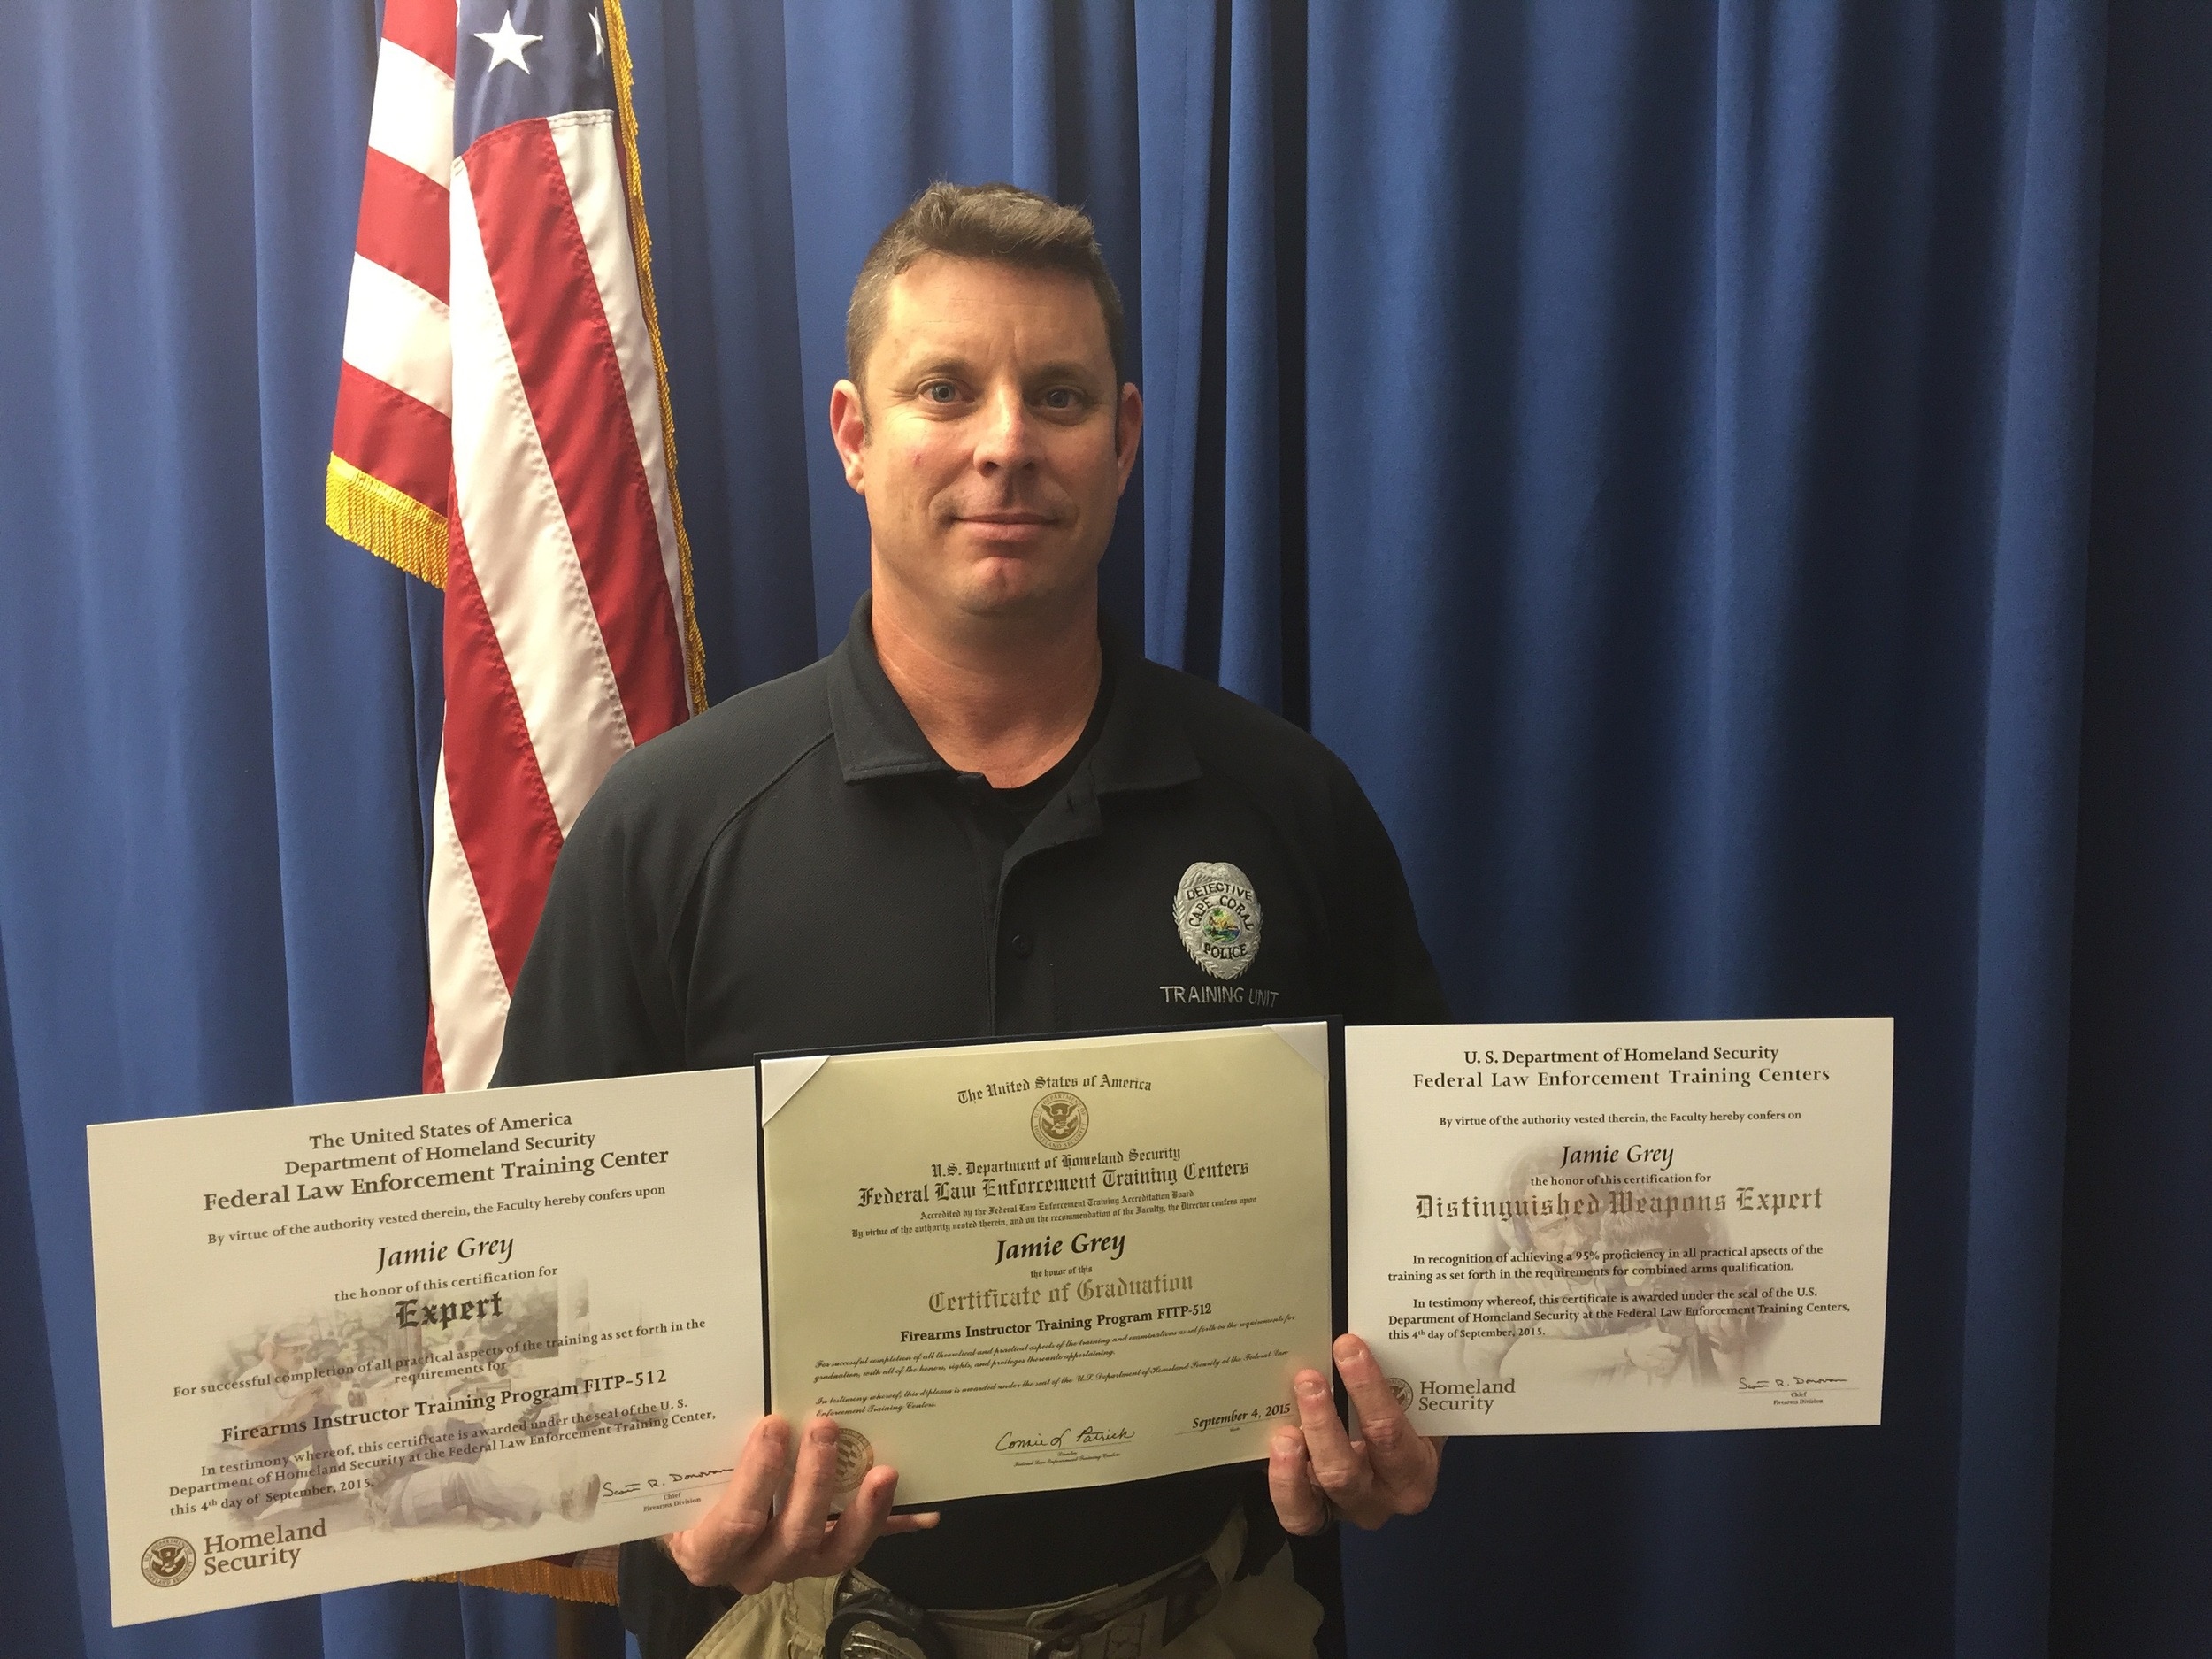 PHOTO: Detective Jamie Grey of the Cape Coral Police Department Training Unit graduated from the FLETC Firearms Instructor Course on September 4, 2015.  He was awarded the distinction of Firearms Expert and Distinguished Weapons Expert.  (Photo Courtesy of Cape Coral Police Department)